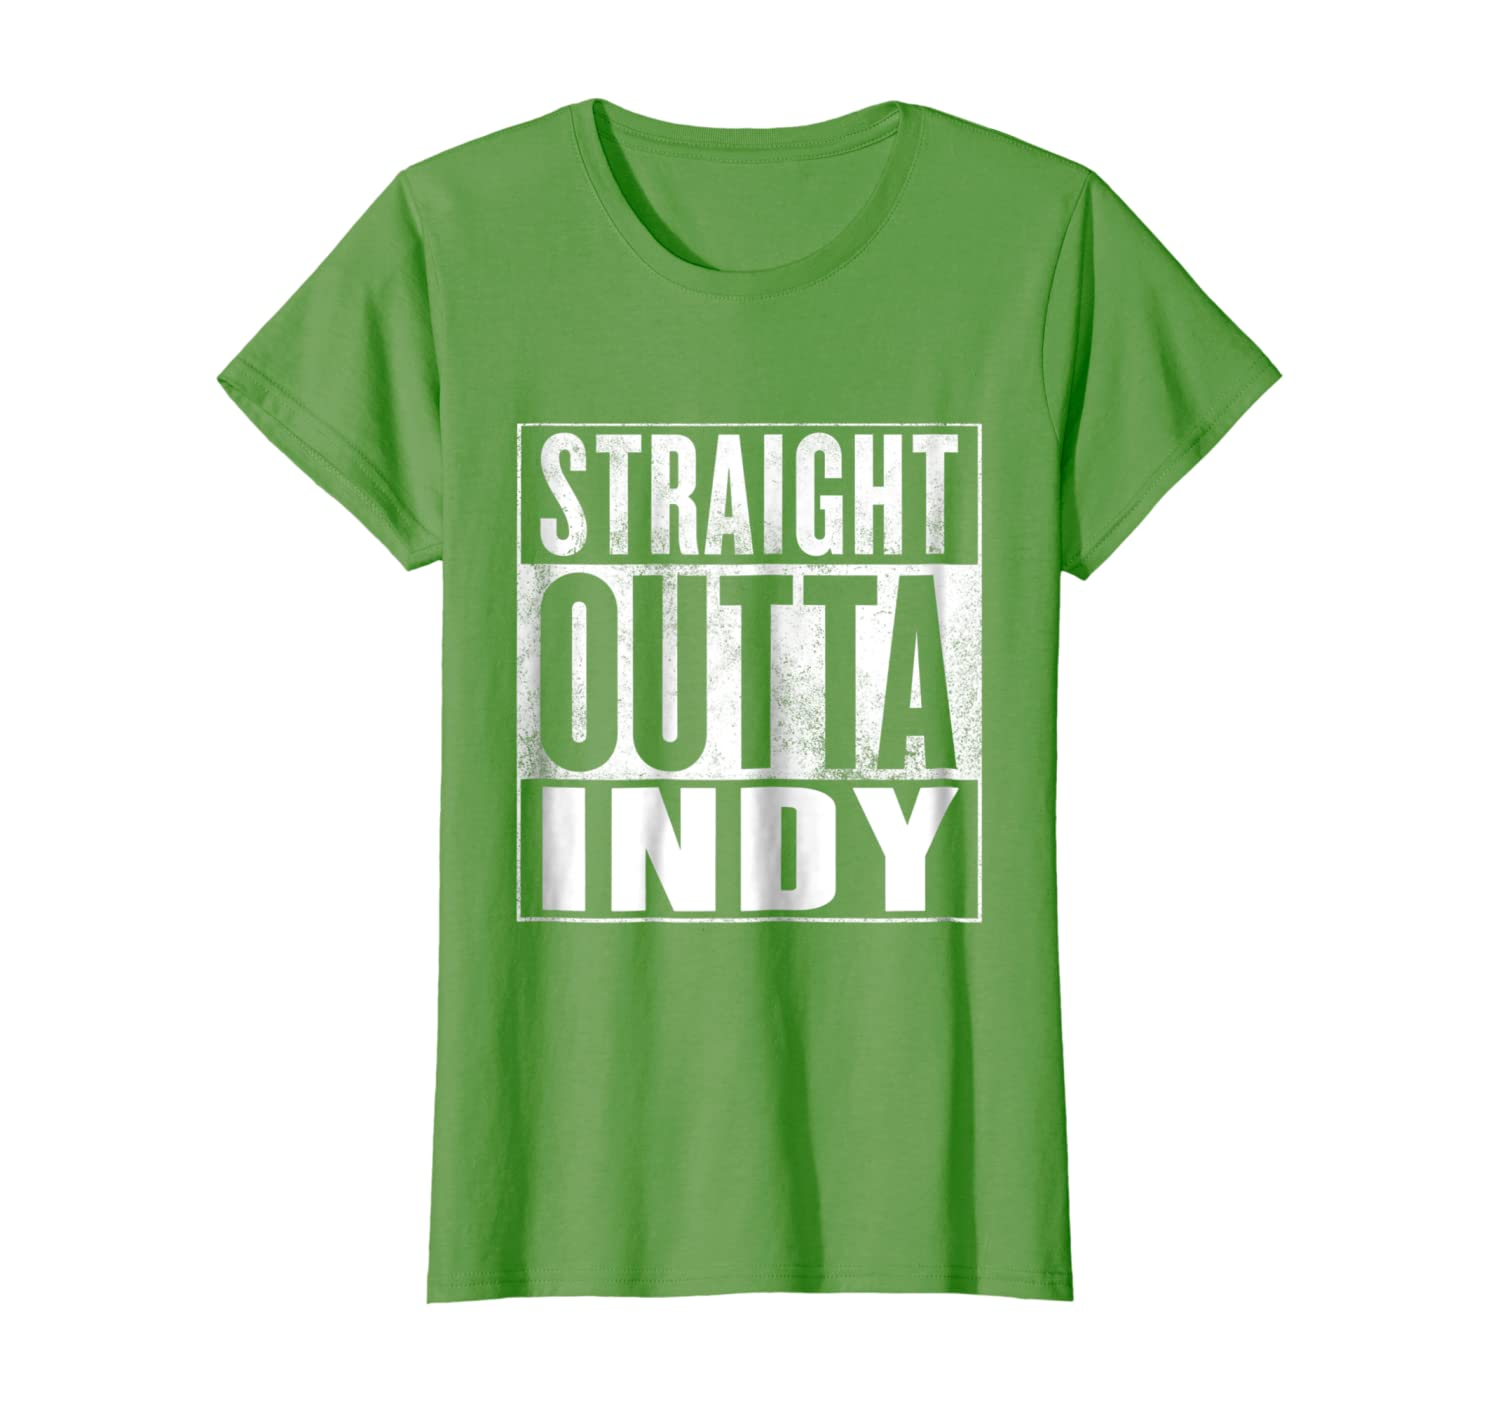 Amazon Com Indy T Shirt Straight Outta Indy Shirt Clothing